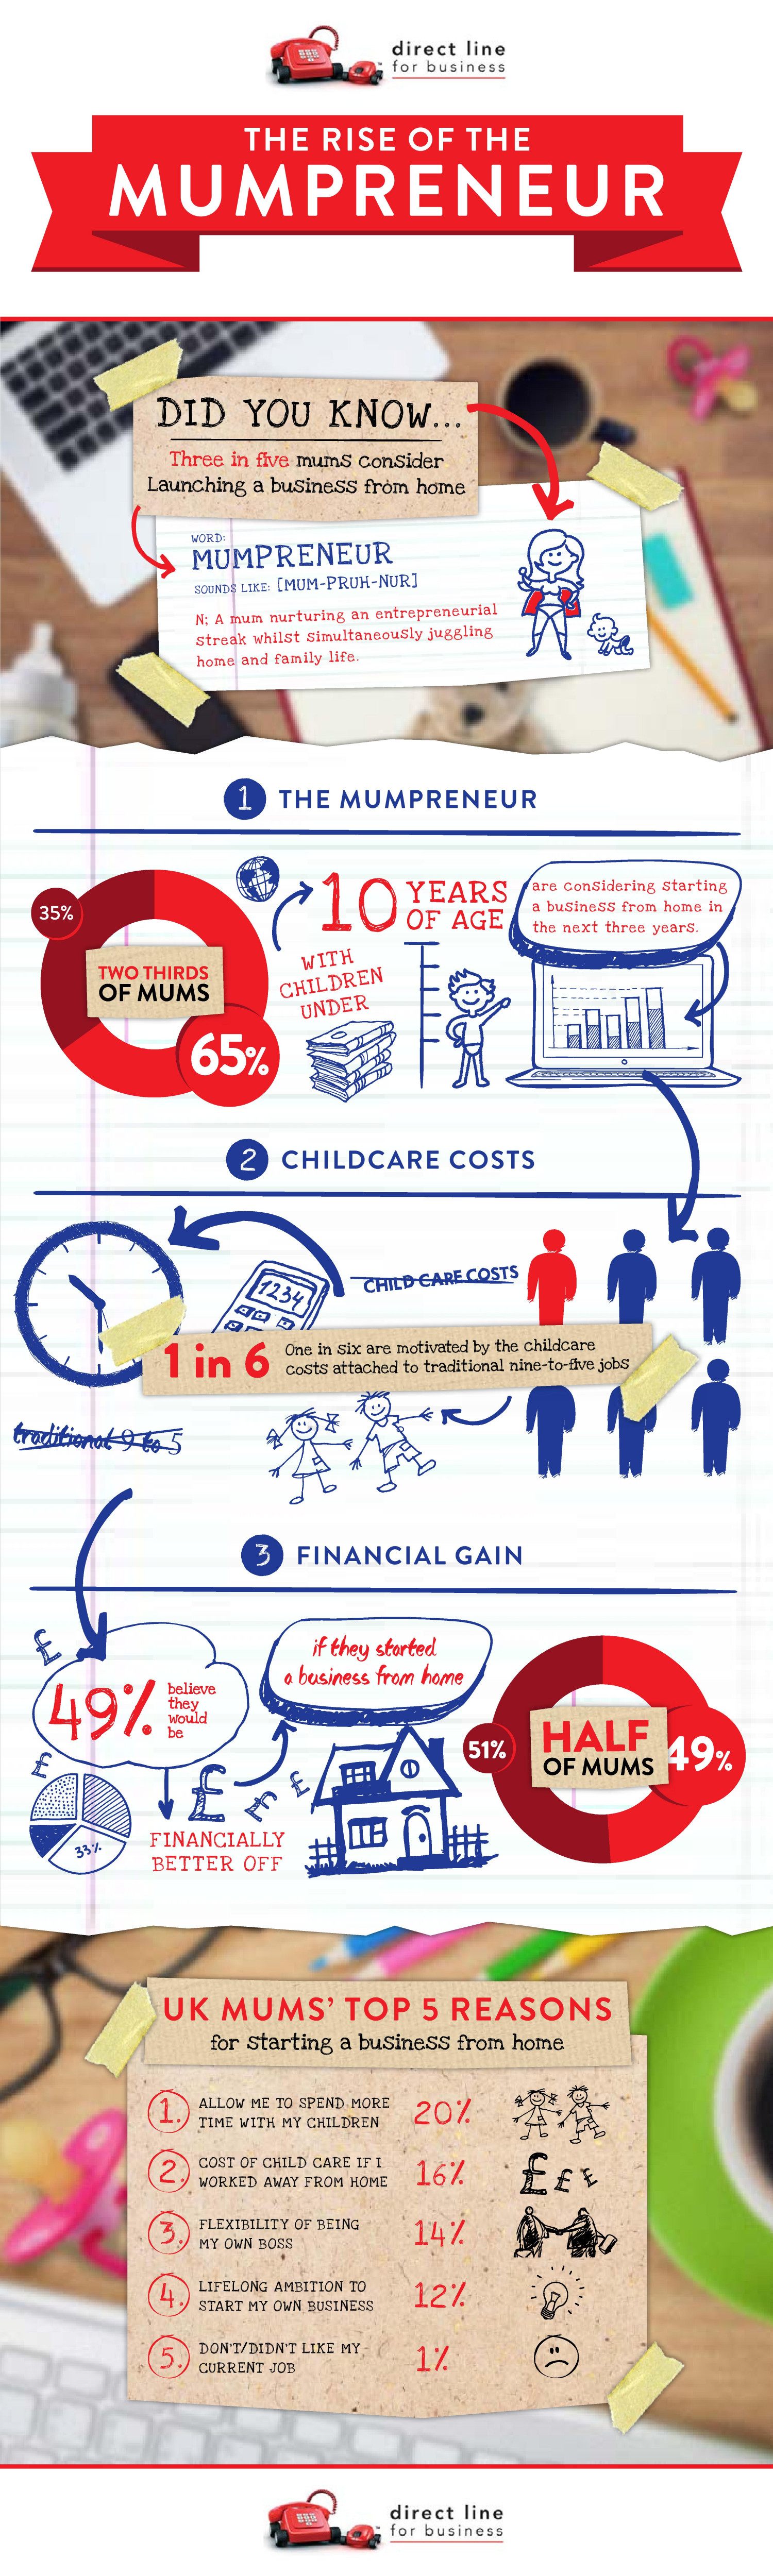 The Rise of The Mumpreneur Infographic